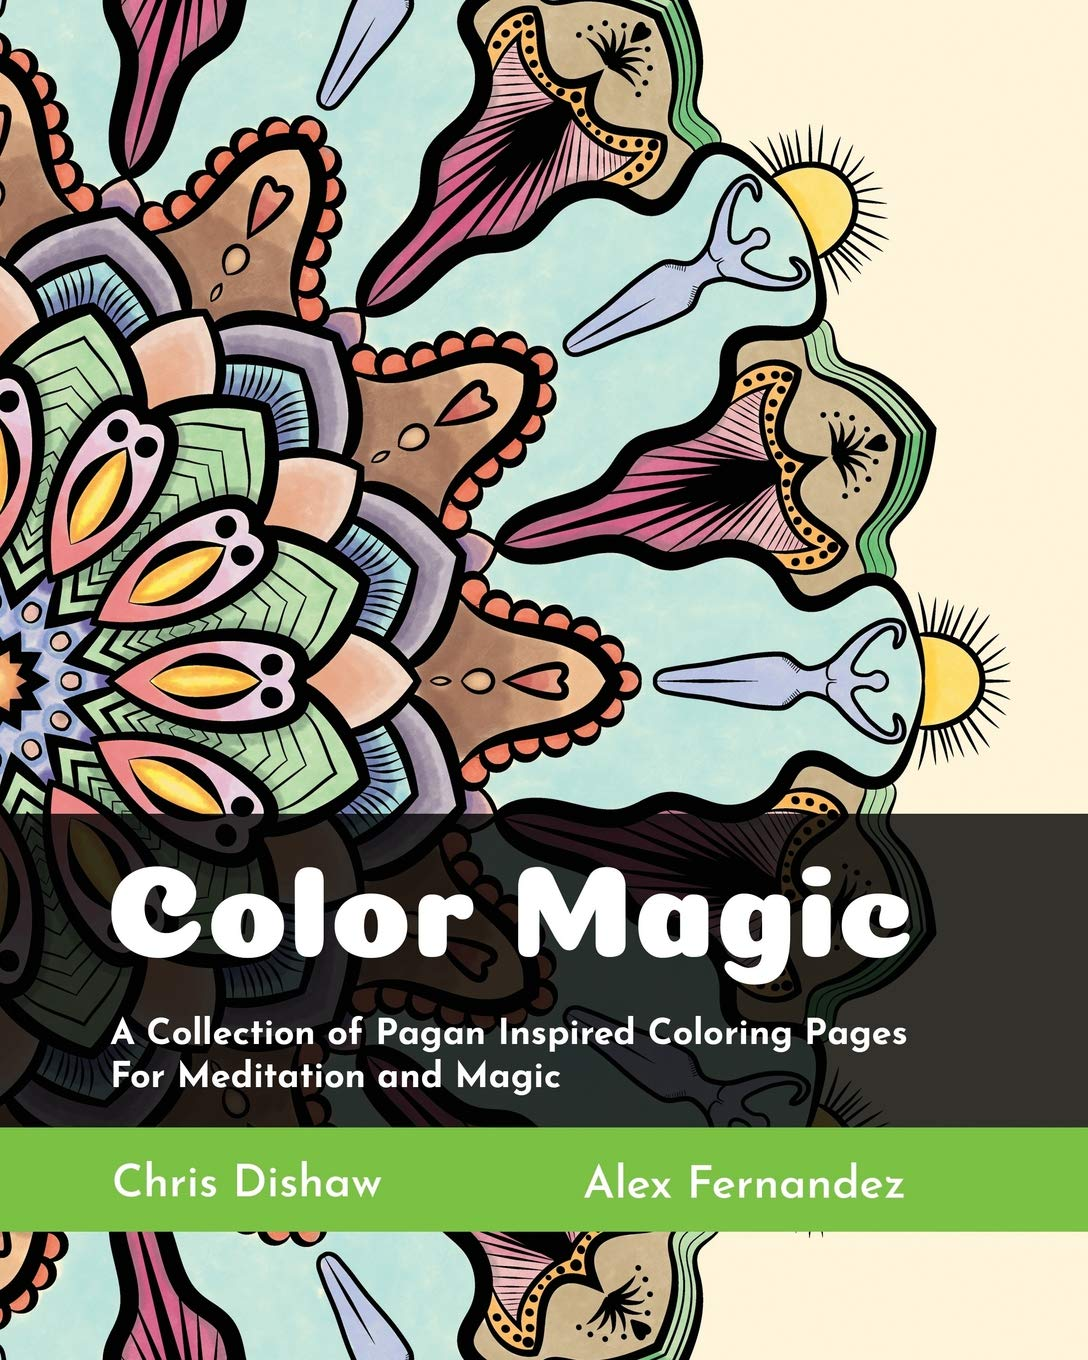 Color Magic A Collection Of Pagan Inspired Coloring Pages For Meditation And Magic Dishaw Chris Fernandez Alex 9781795089784 Amazon Com Books